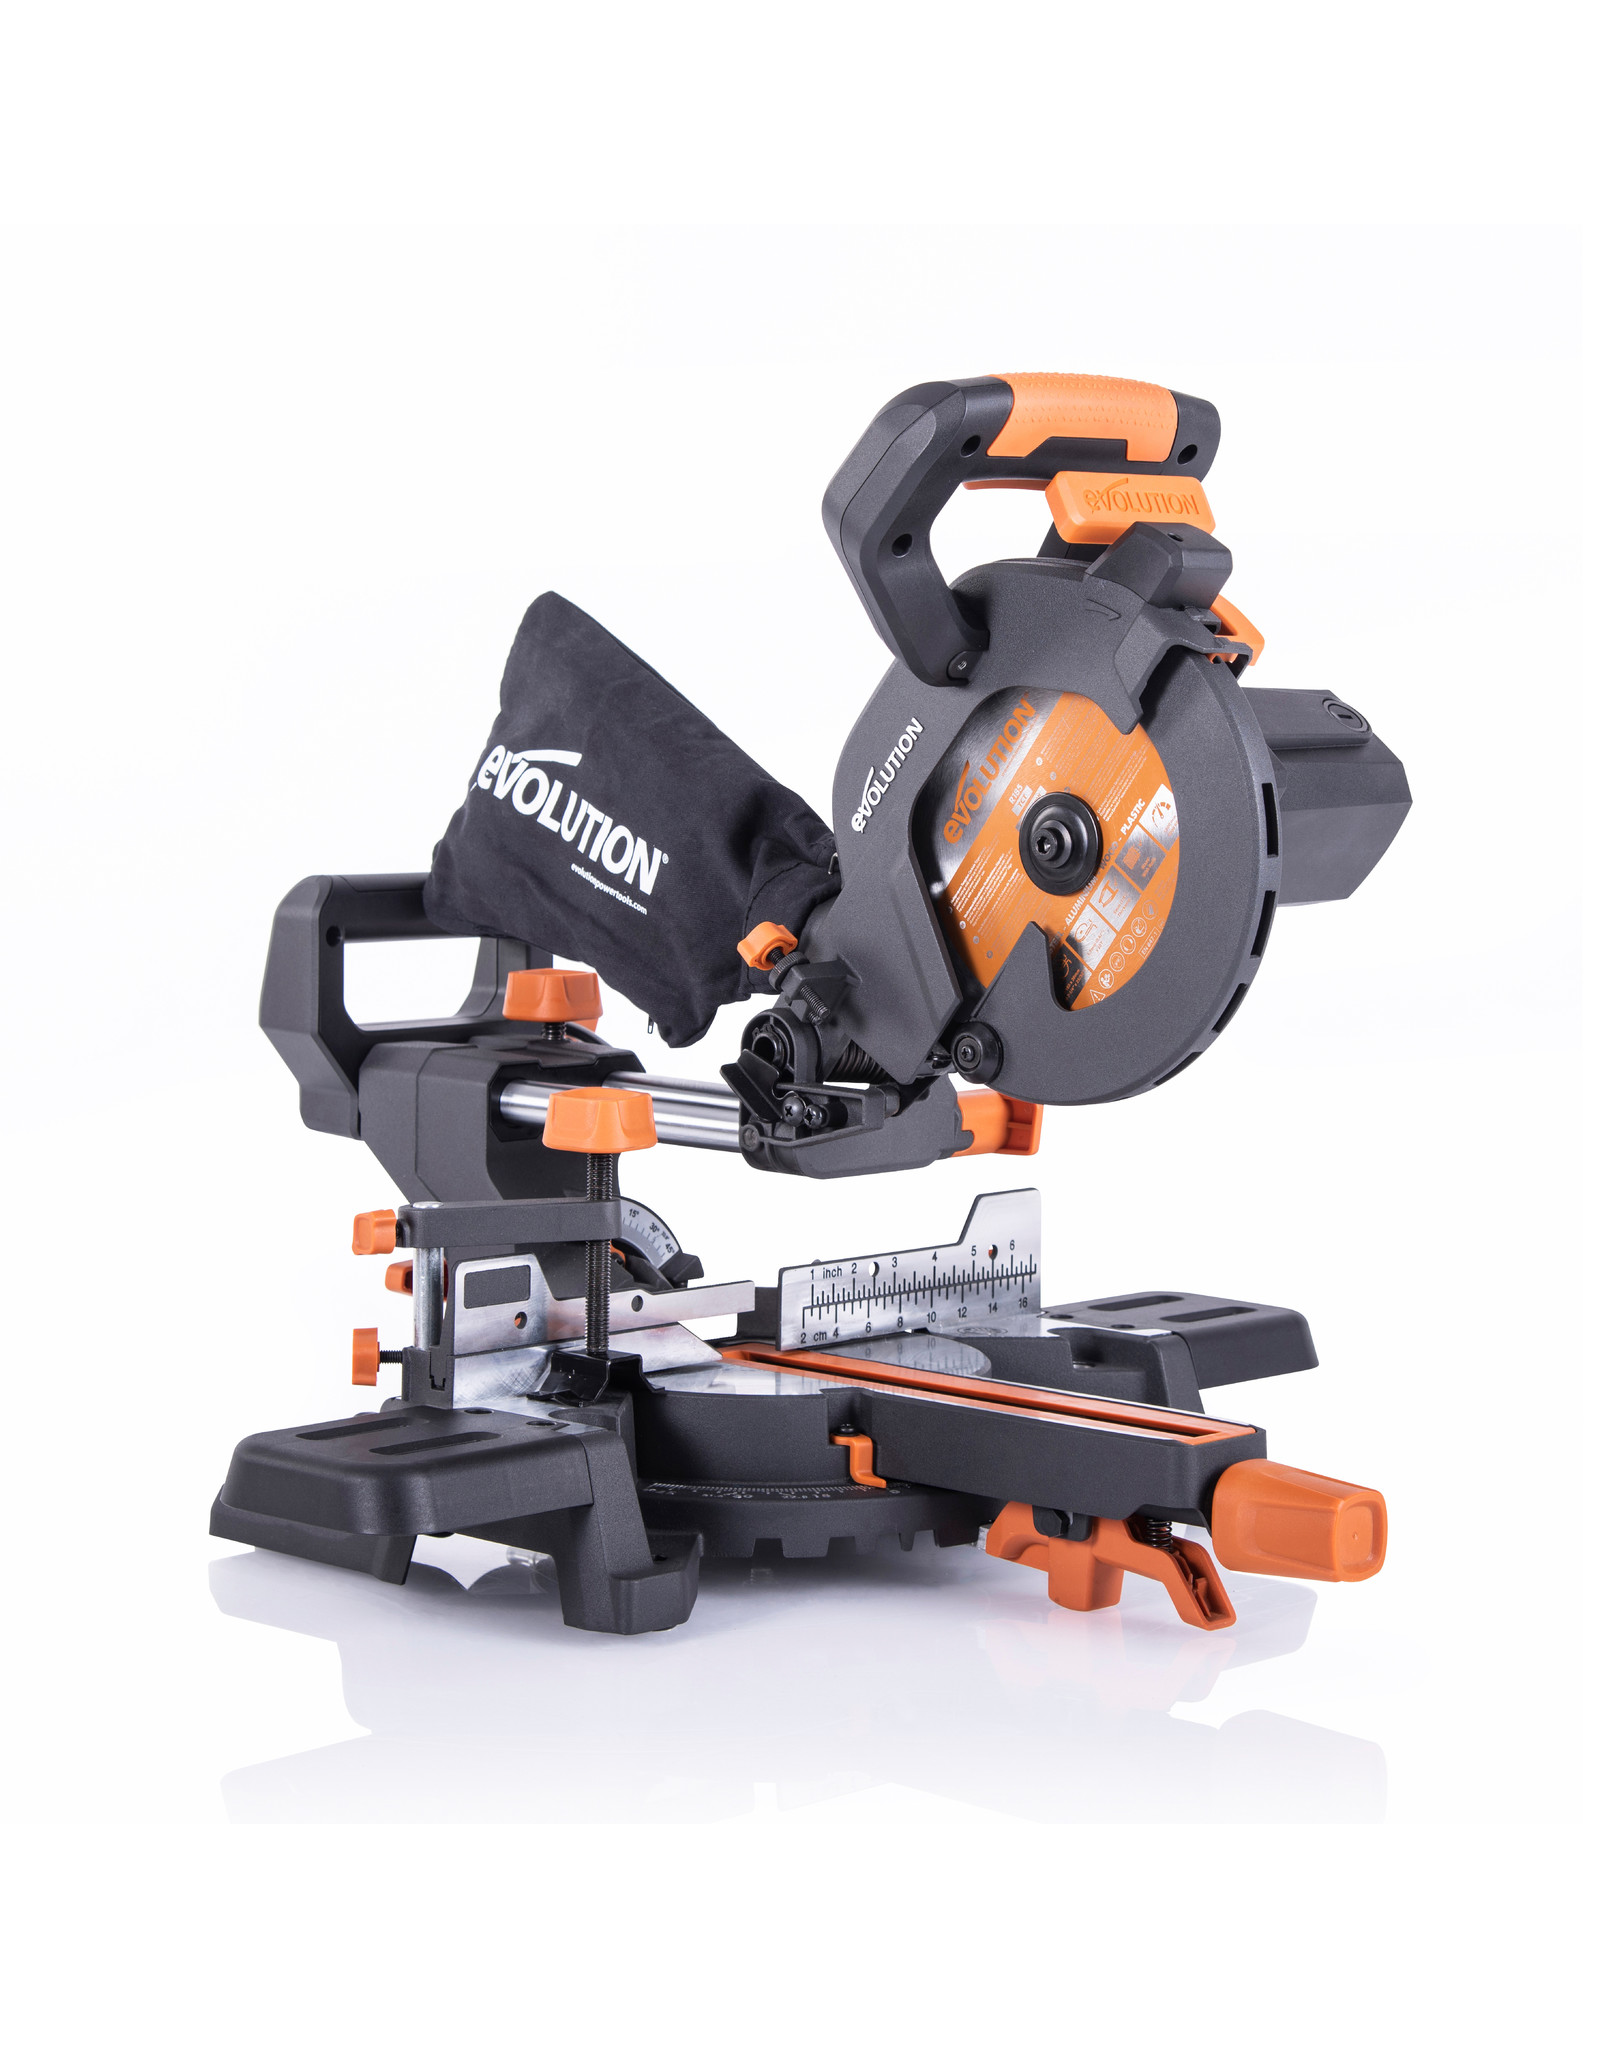 Evolution Power Tools Build Line MULTIFUNCTIONAL MITRE SAW RAGE - R185SMS+